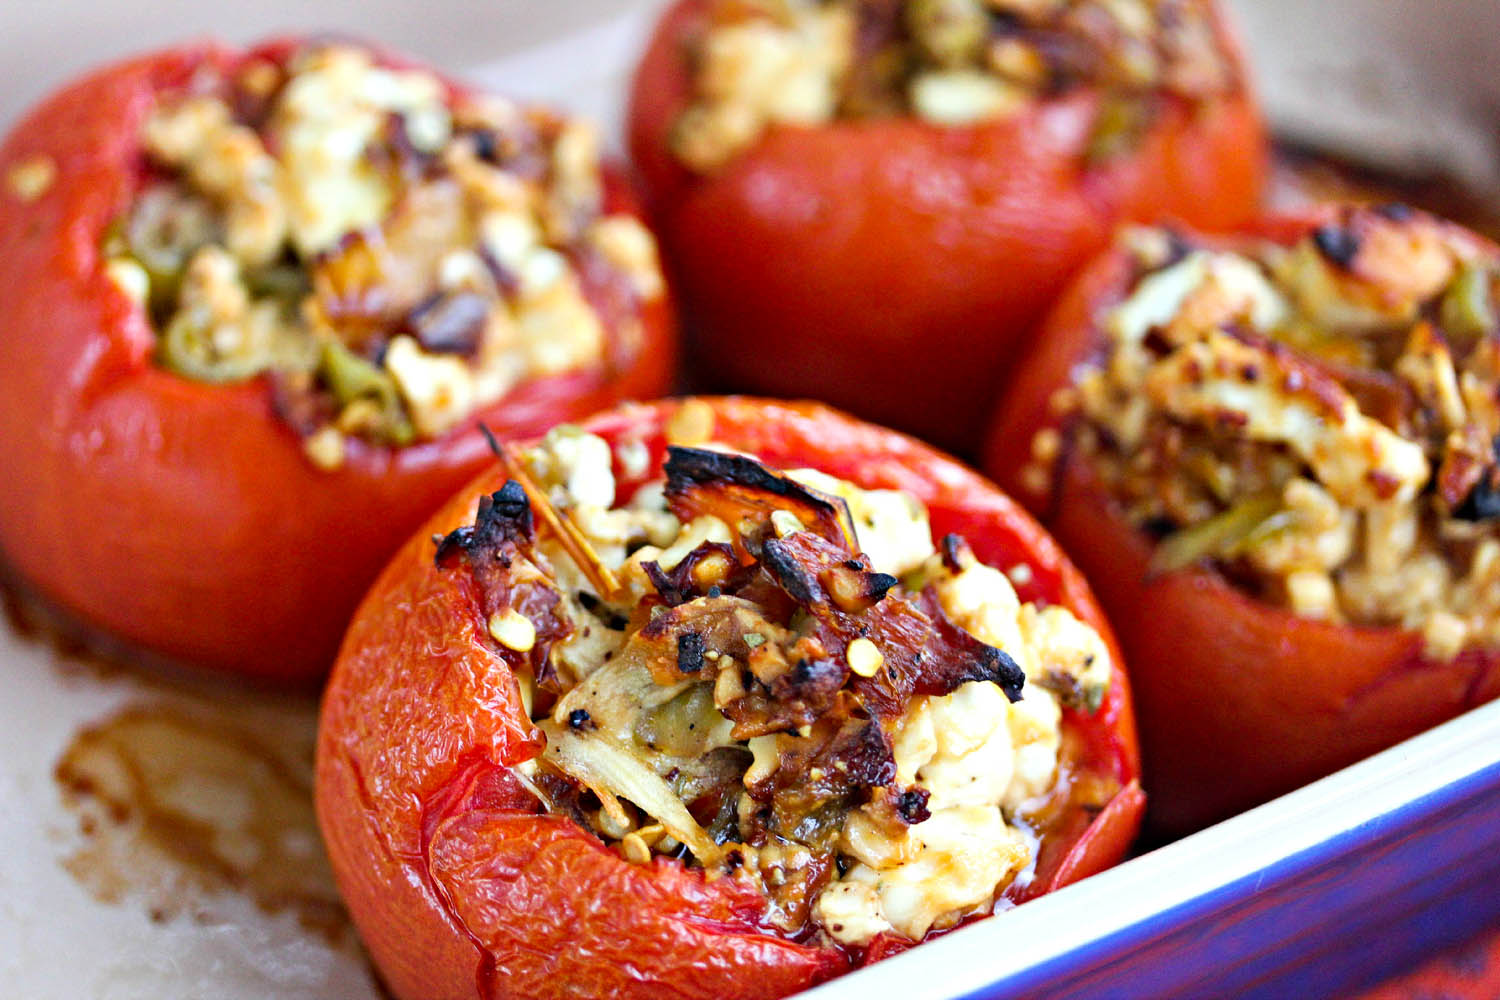 Baked stuffed cherry tomatoes